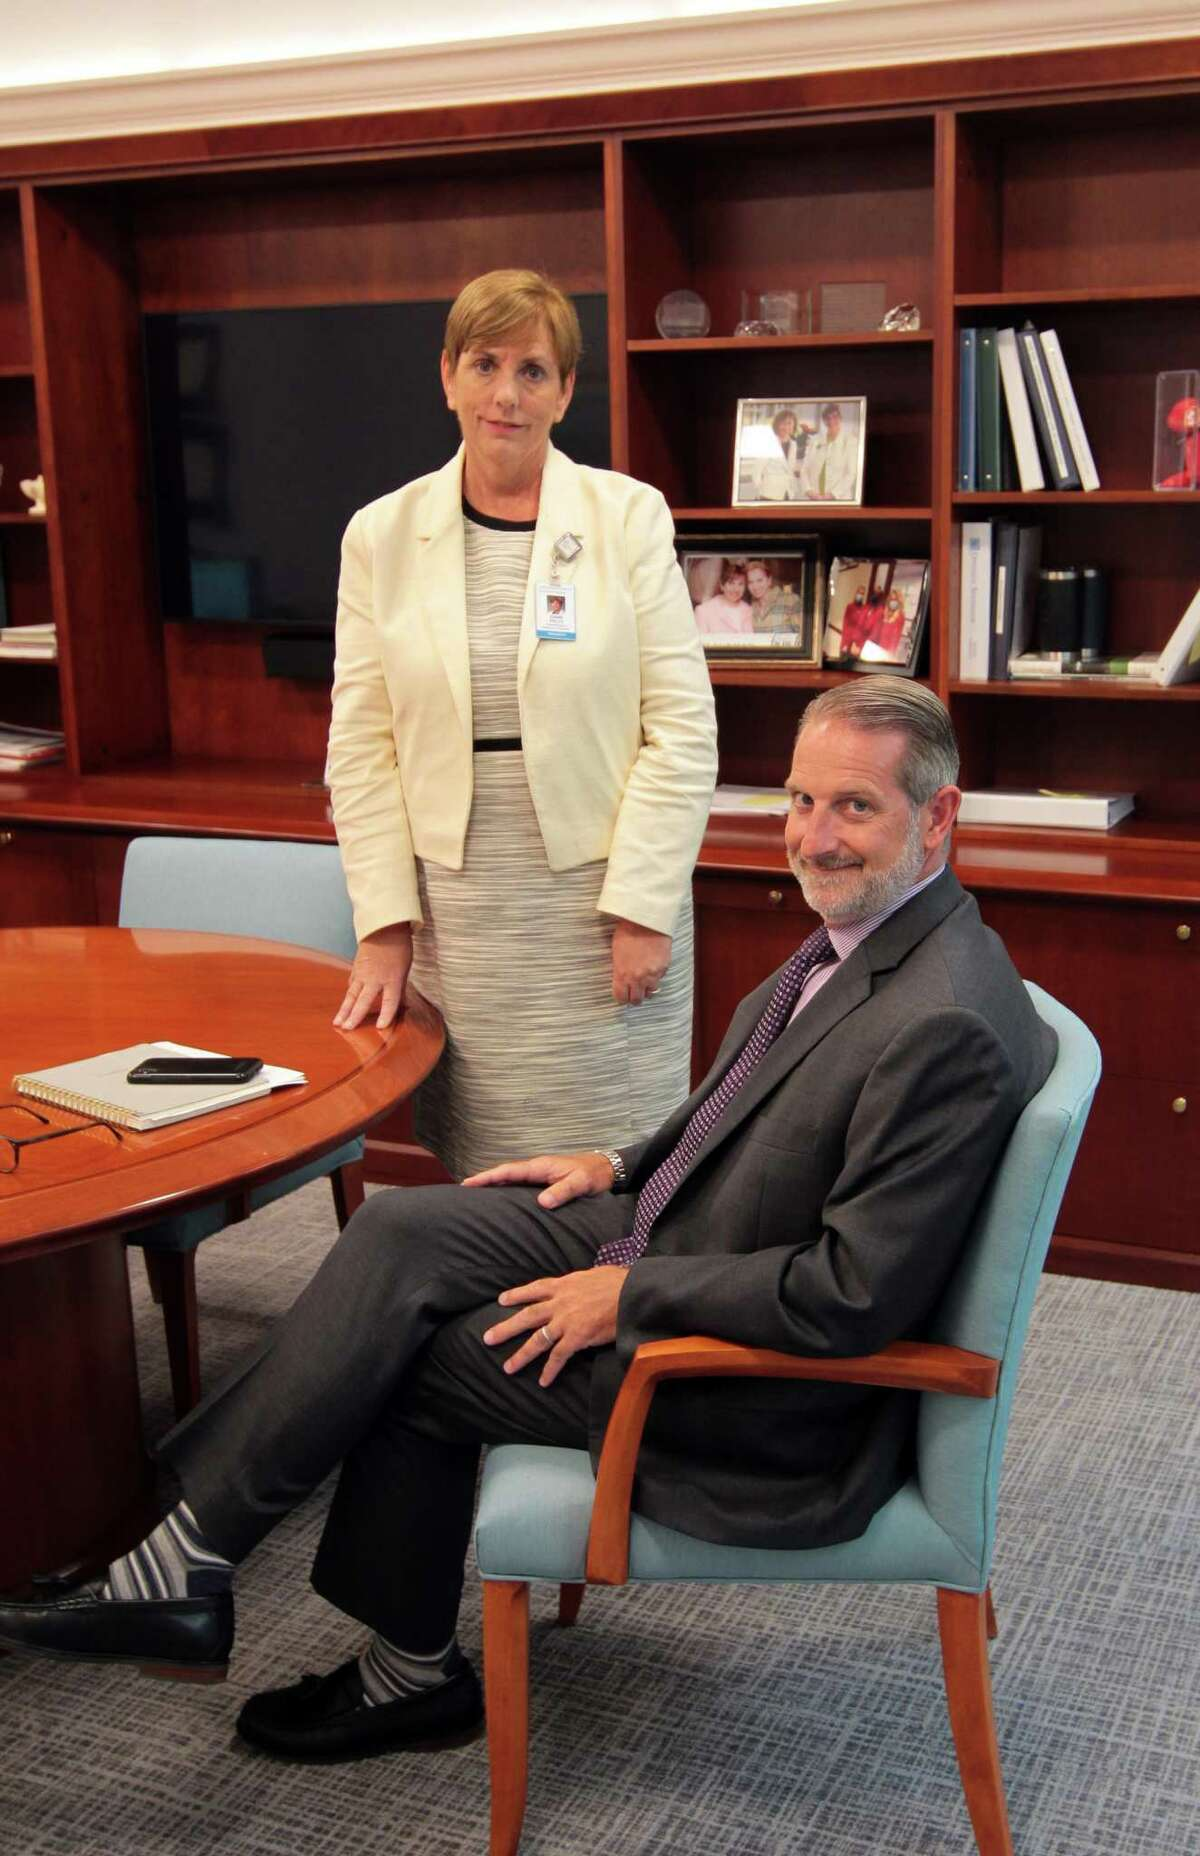 Greenwich Hospital President Diane Kelly and COO Marc Kosak pose at the hospital in Greenwich, Conn., on Wednesday July 21, 2021. The hospital has expansion plans for the cancer care unit.